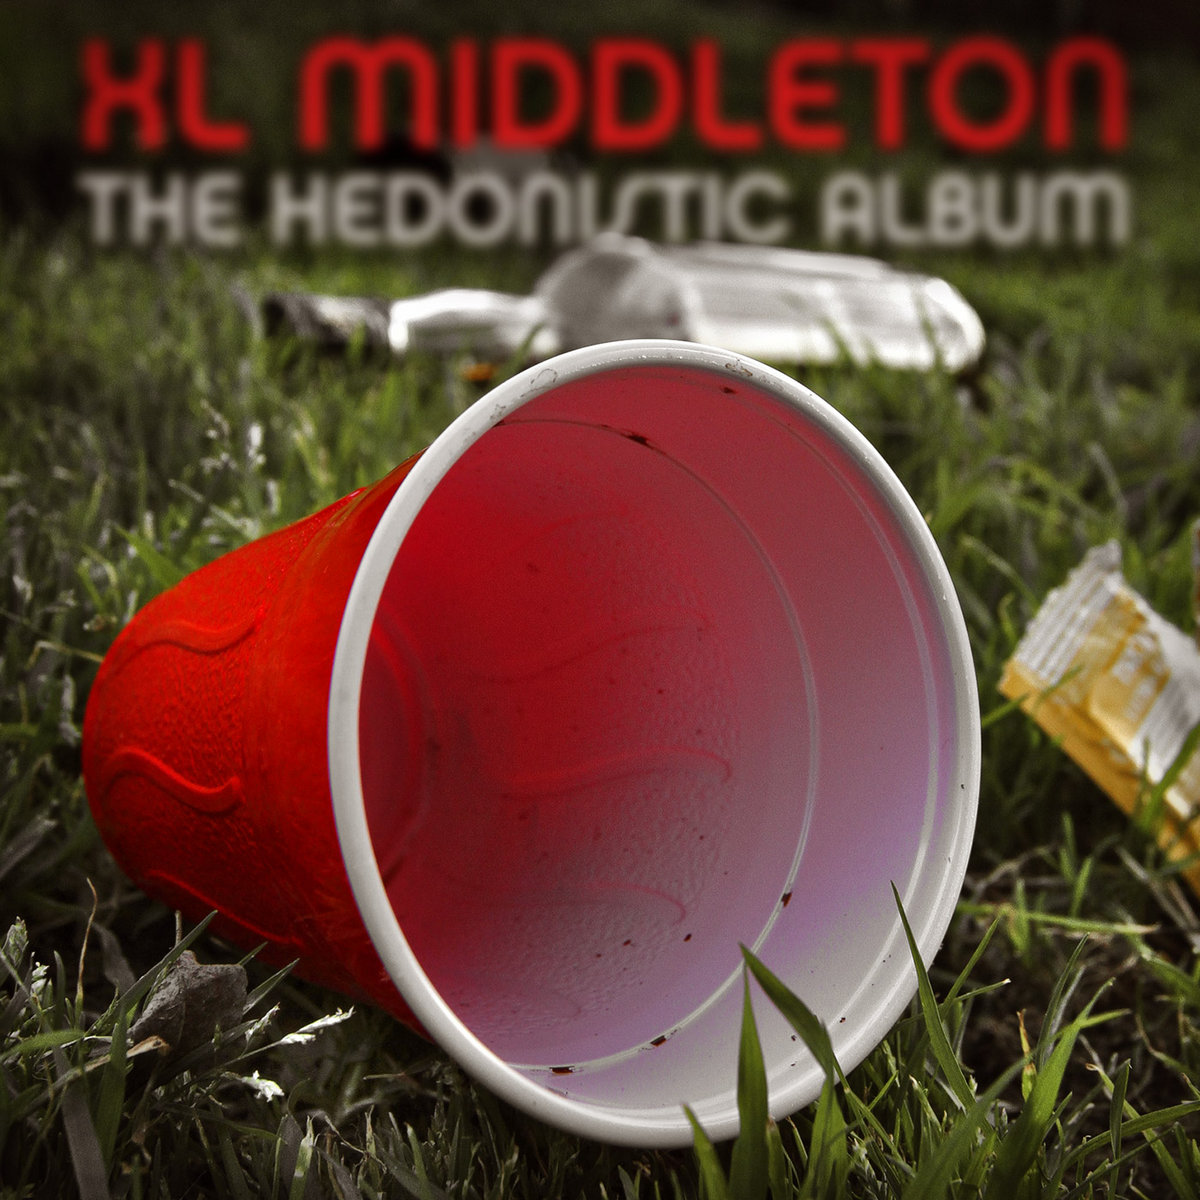 The hedonistic album deluxe edition cavi sounds the hedonistic album deluxe edition malvernweather Choice Image